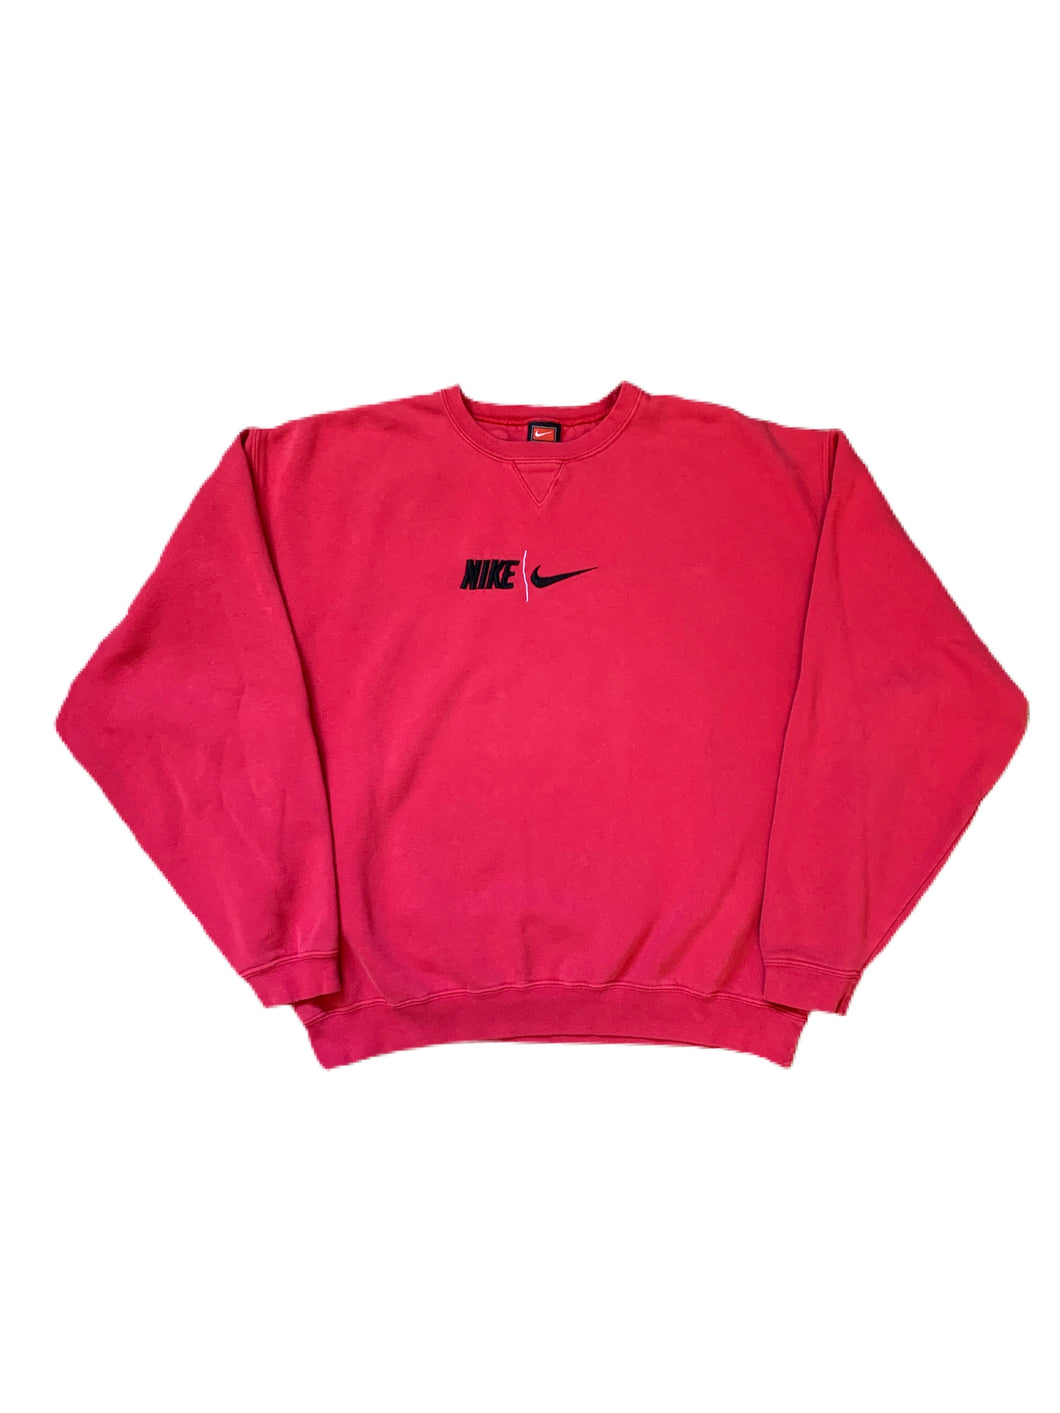 Nike Center Swoosh W/ Spell Out Crewneck Jumper Y2k (XL)